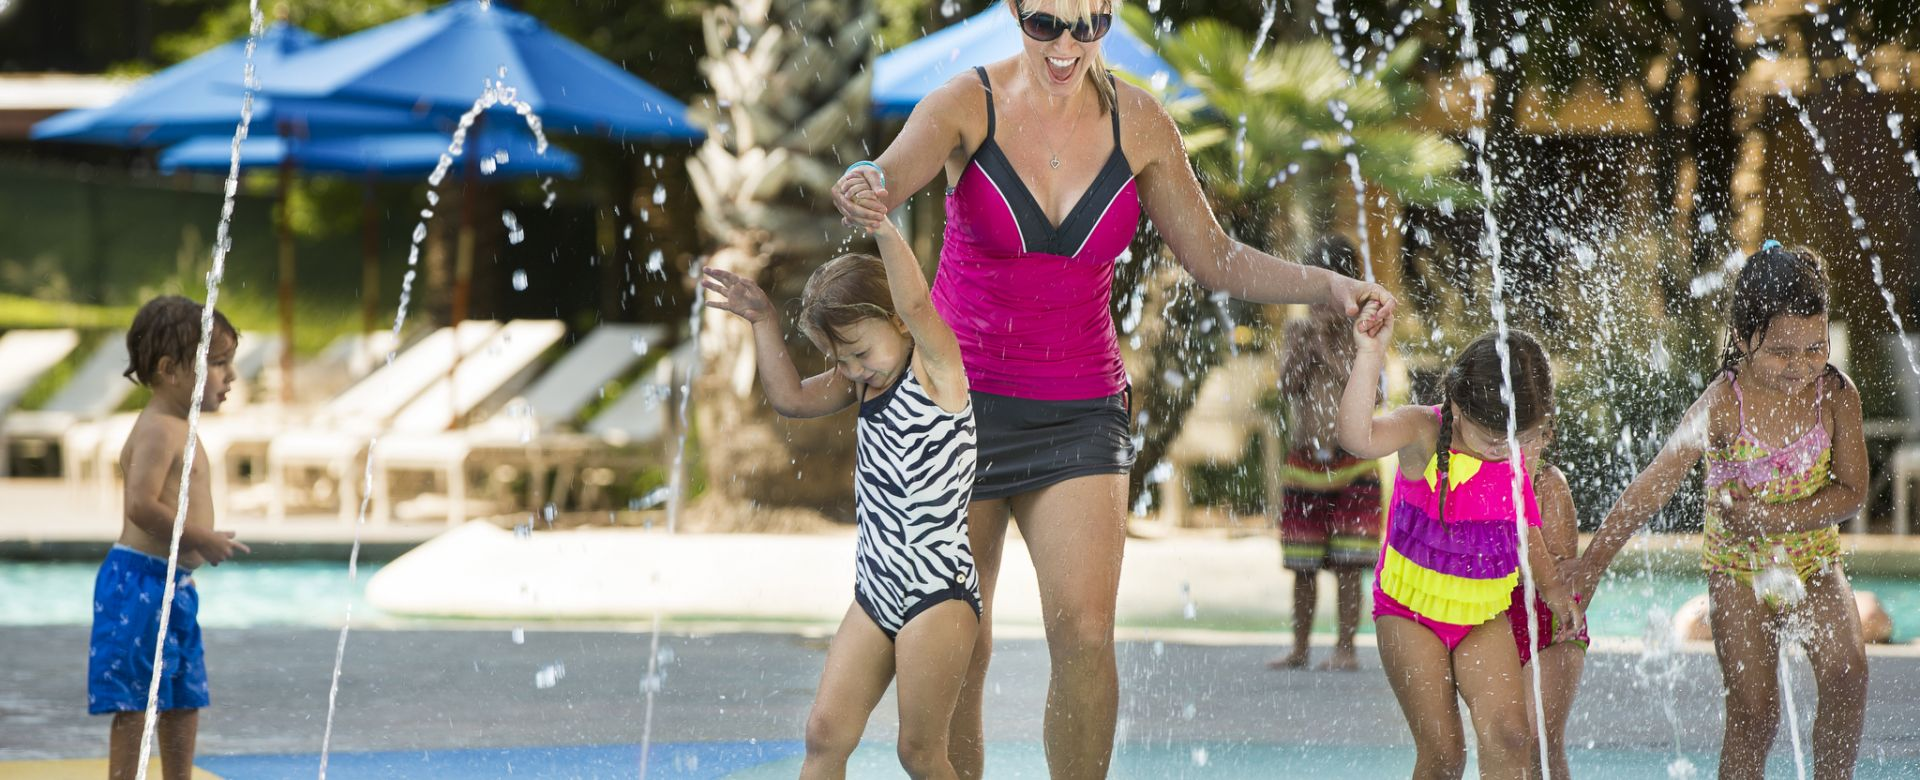 Woman playing on a splash pad with her kids